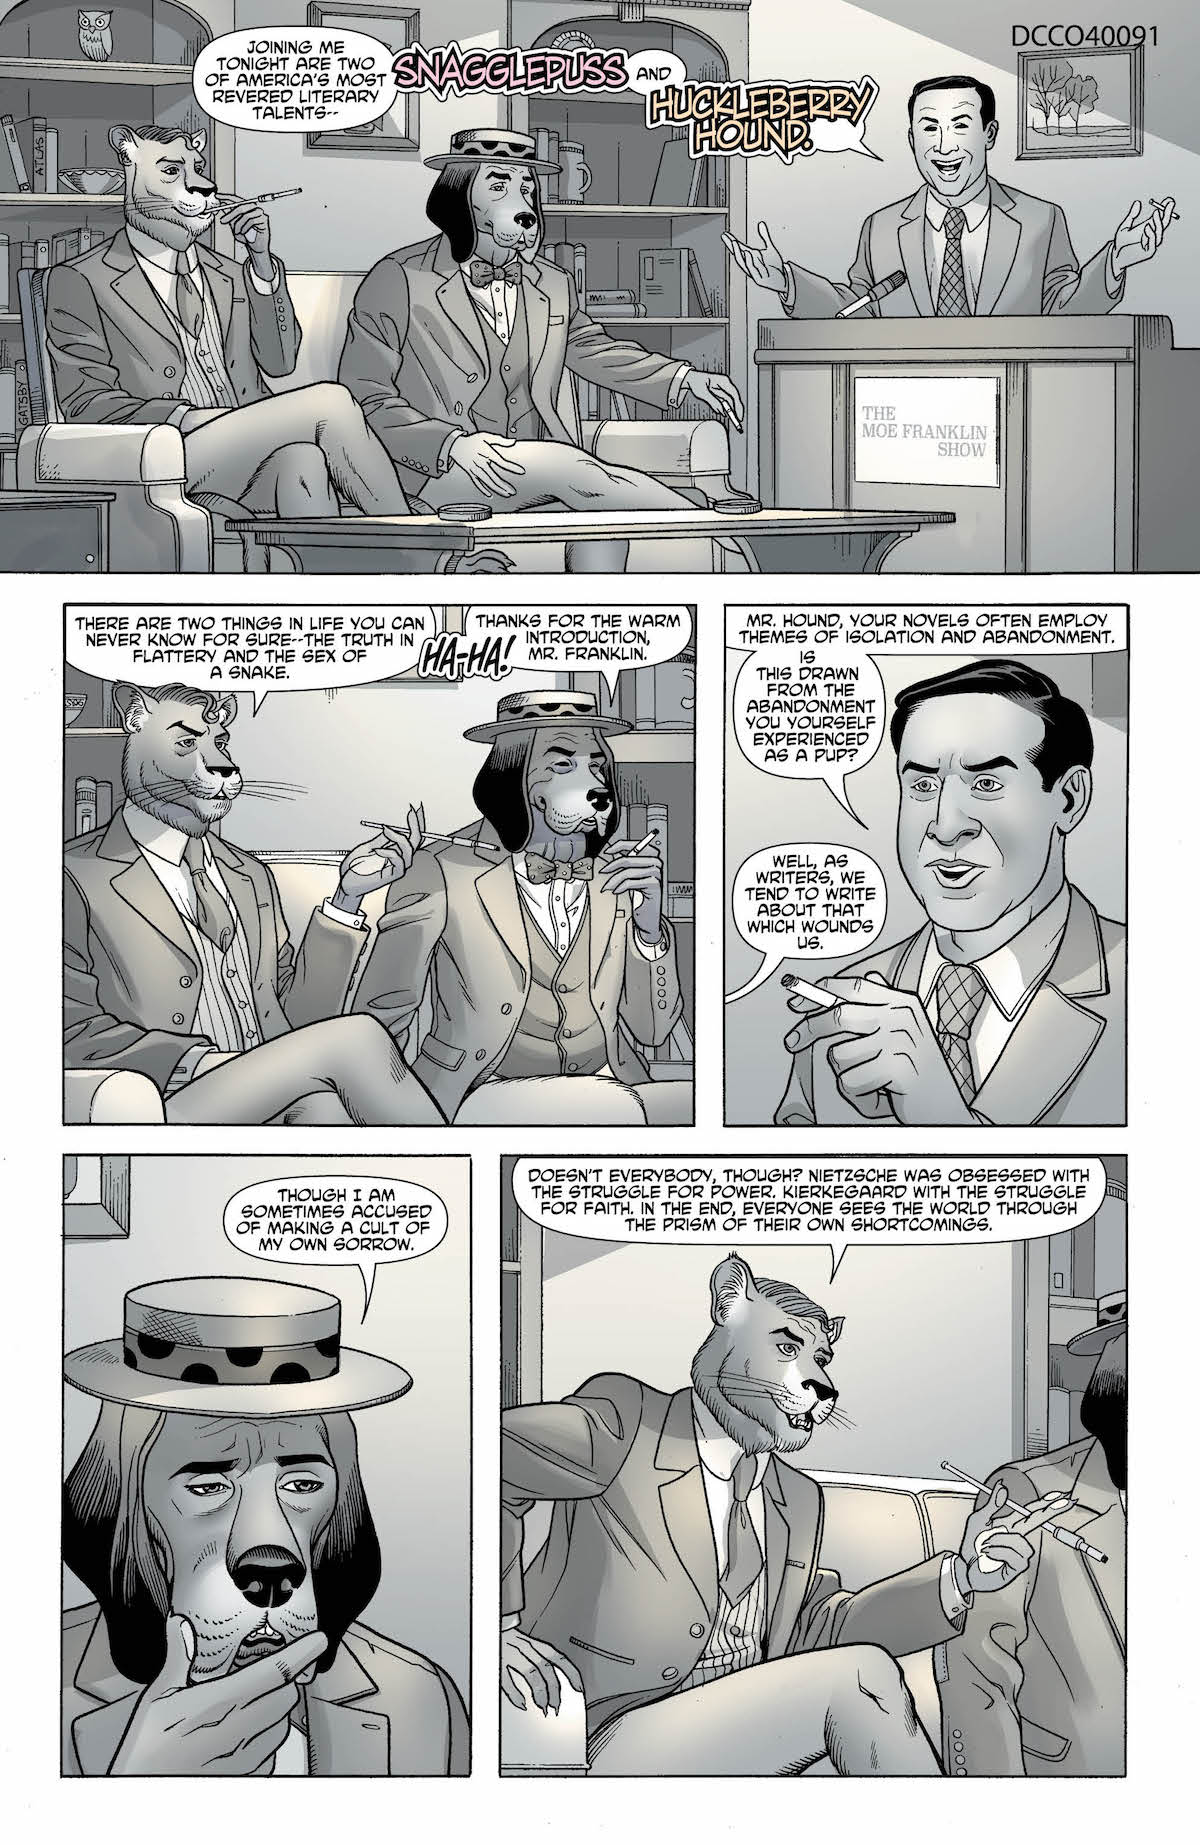 Snagglepuss Chronicles #3 page 1